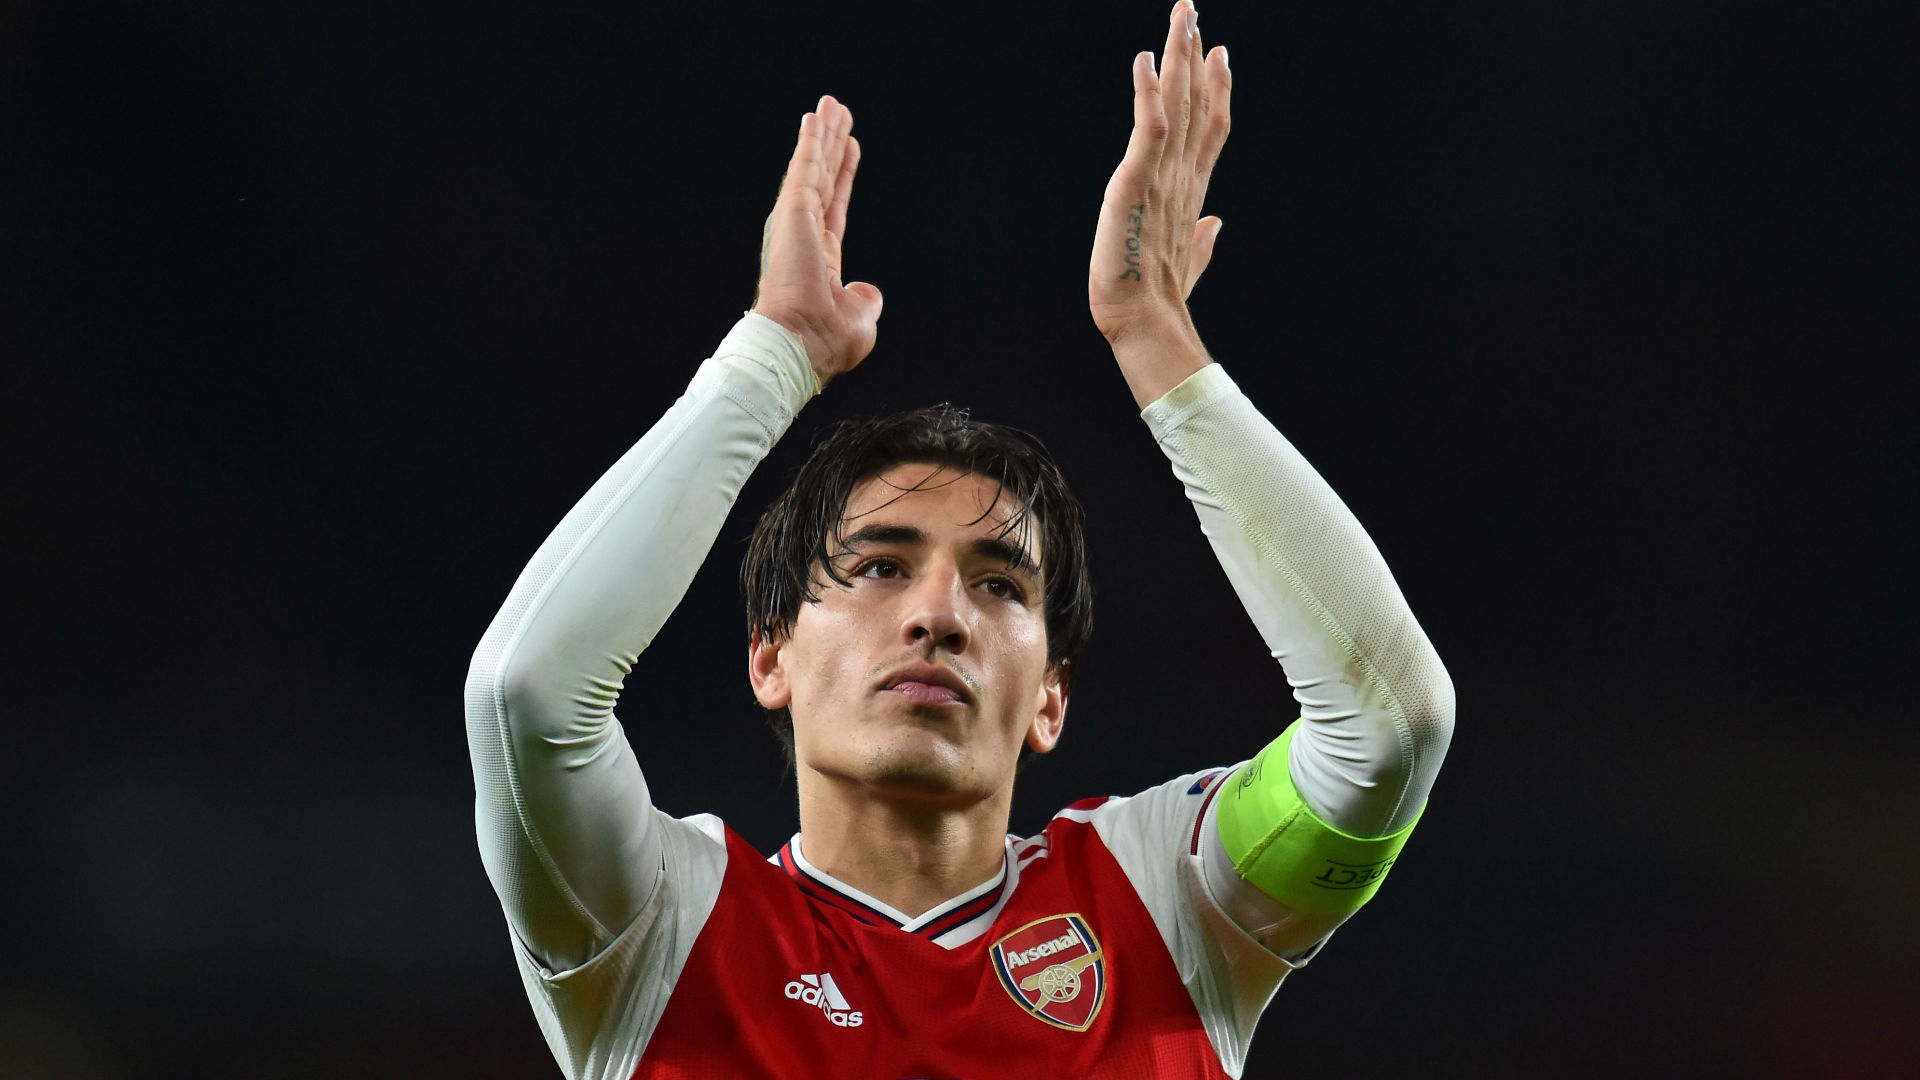 Bellerin: The world would be 'a much better place' if social media trolls were held accountable for their actions